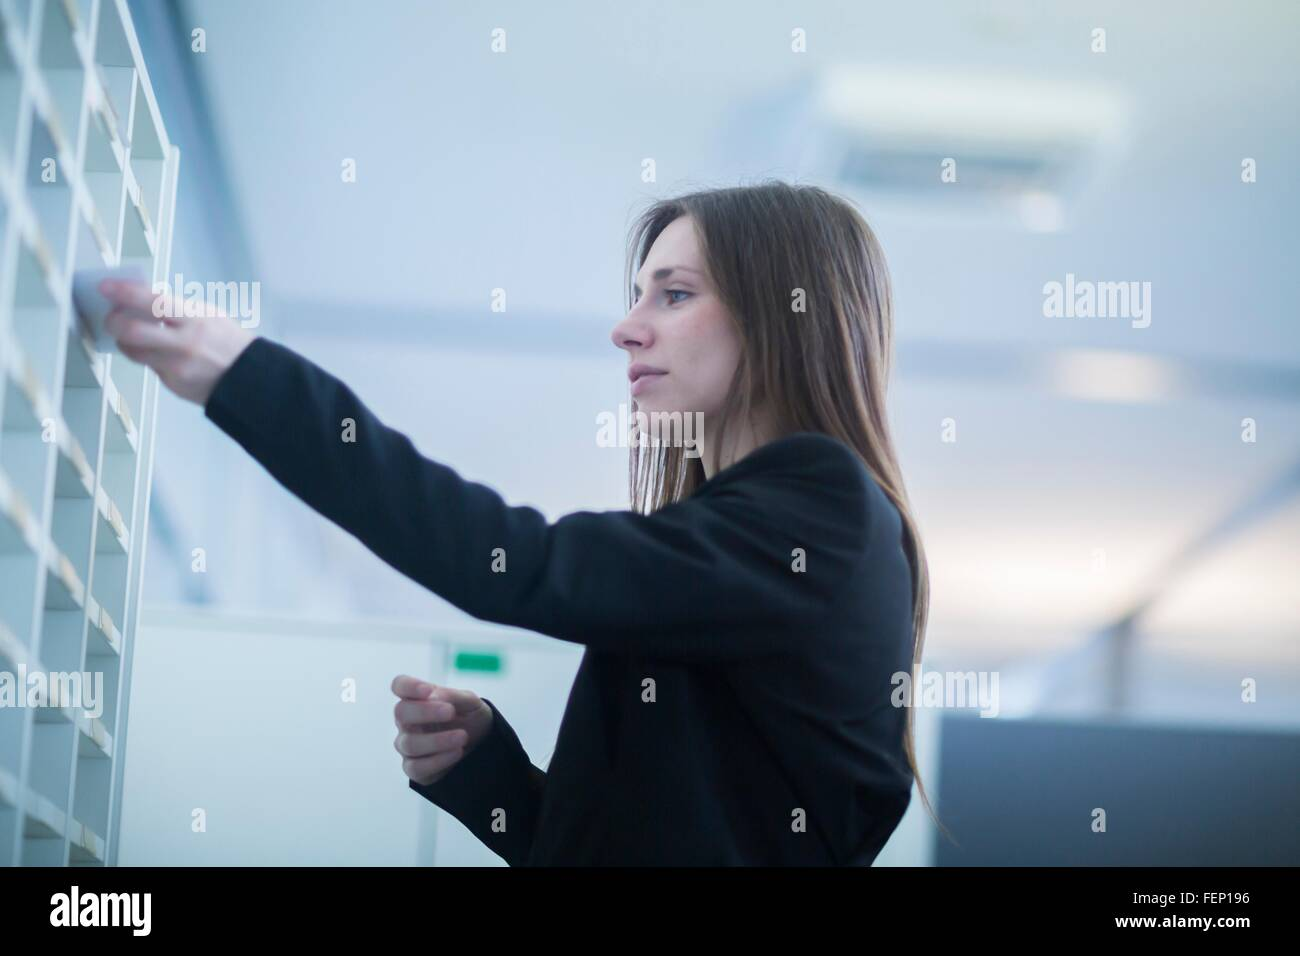 Low angle side view of young woman in office inserting paperwork into pigeon hole - Stock Image